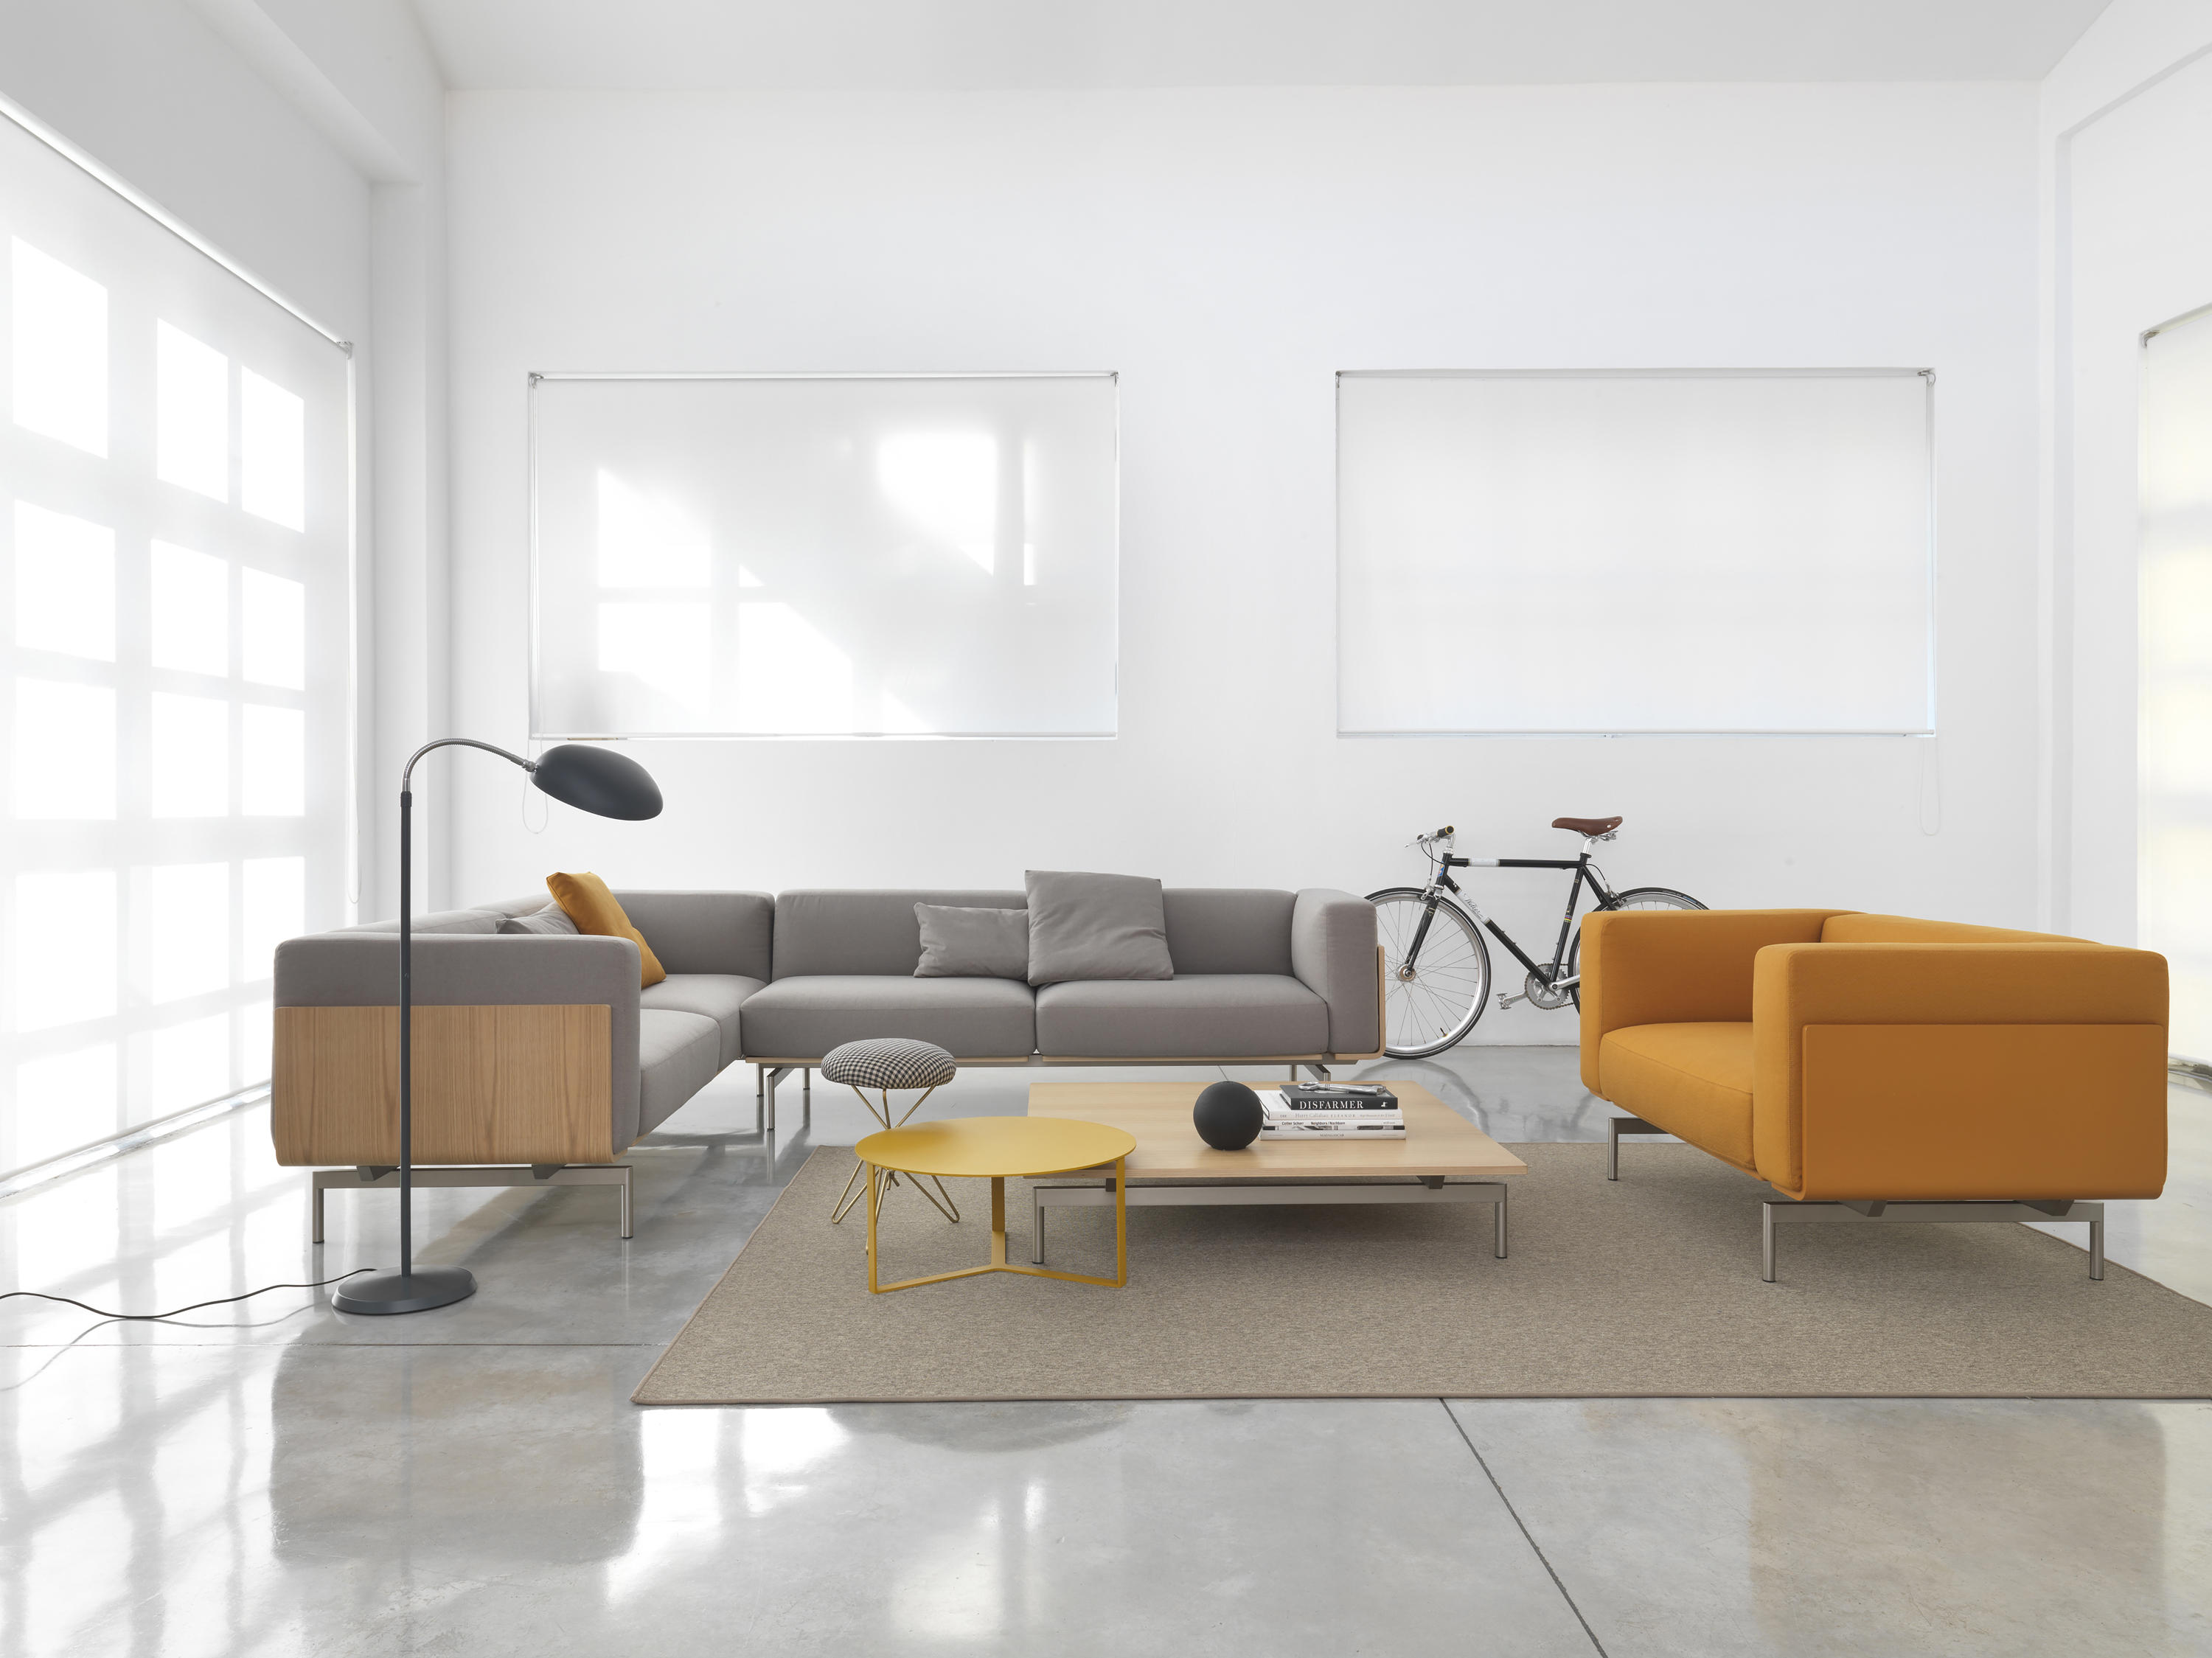 L SOFA Lounge chairs from Giulio Marelli